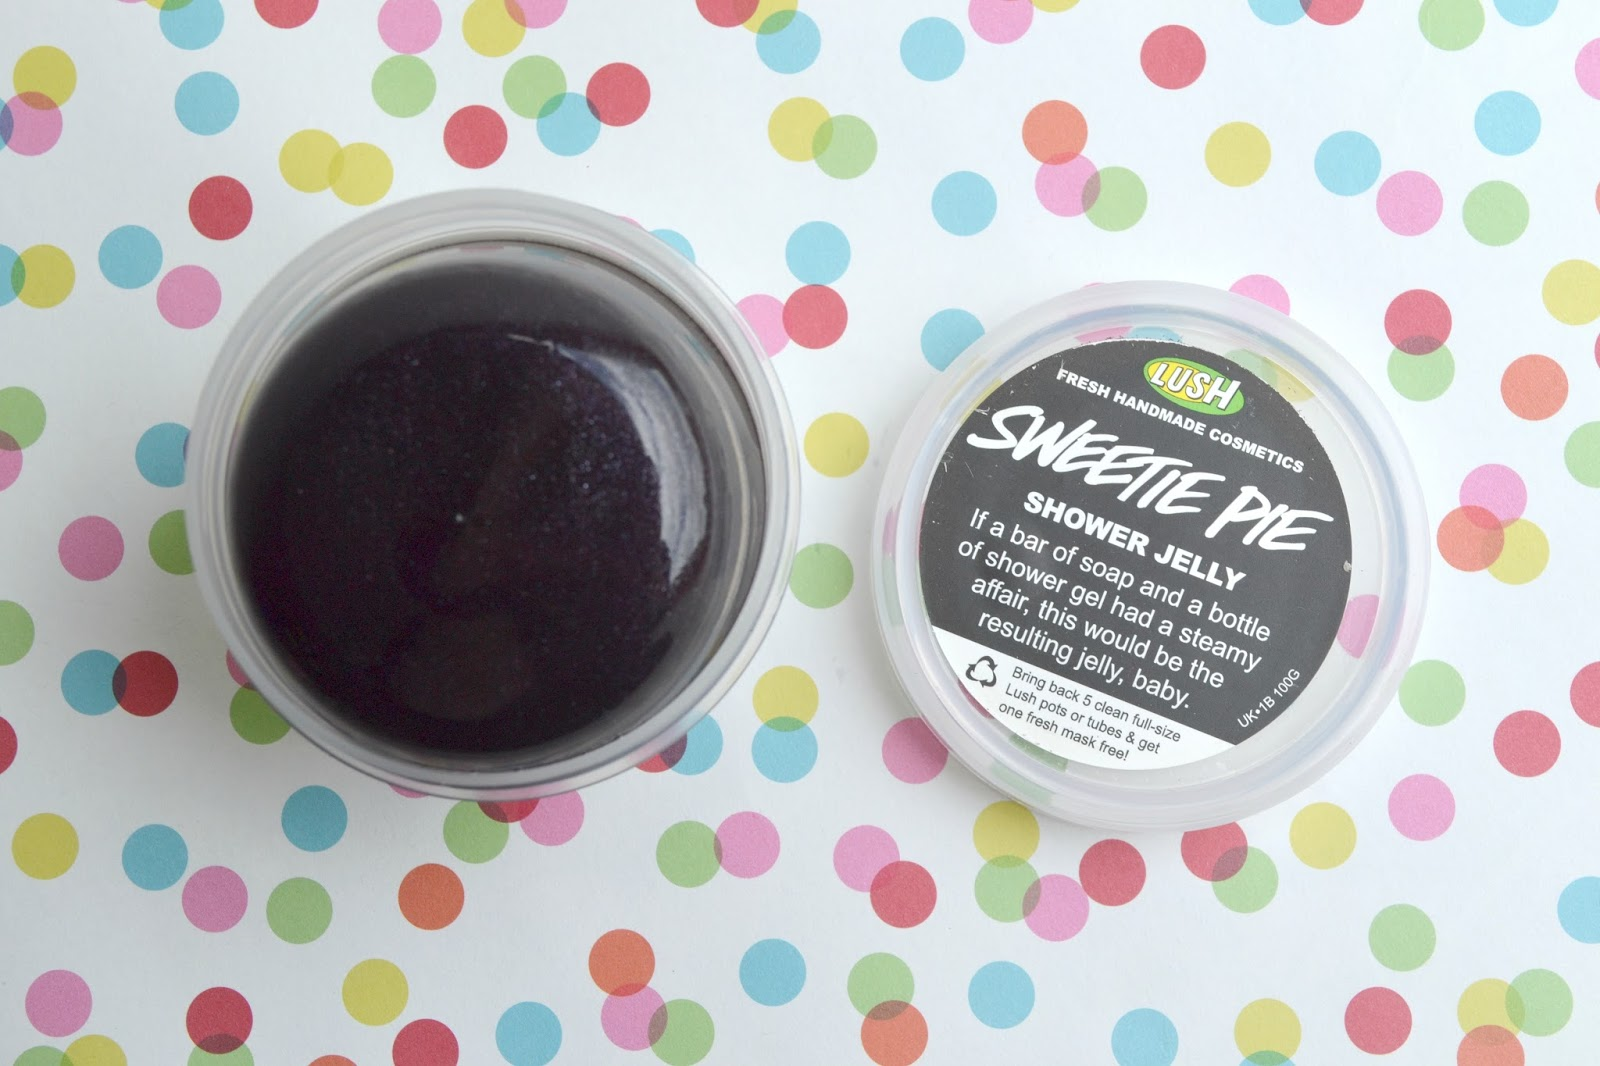 Lush: Sweetie Pie Shower Jelly